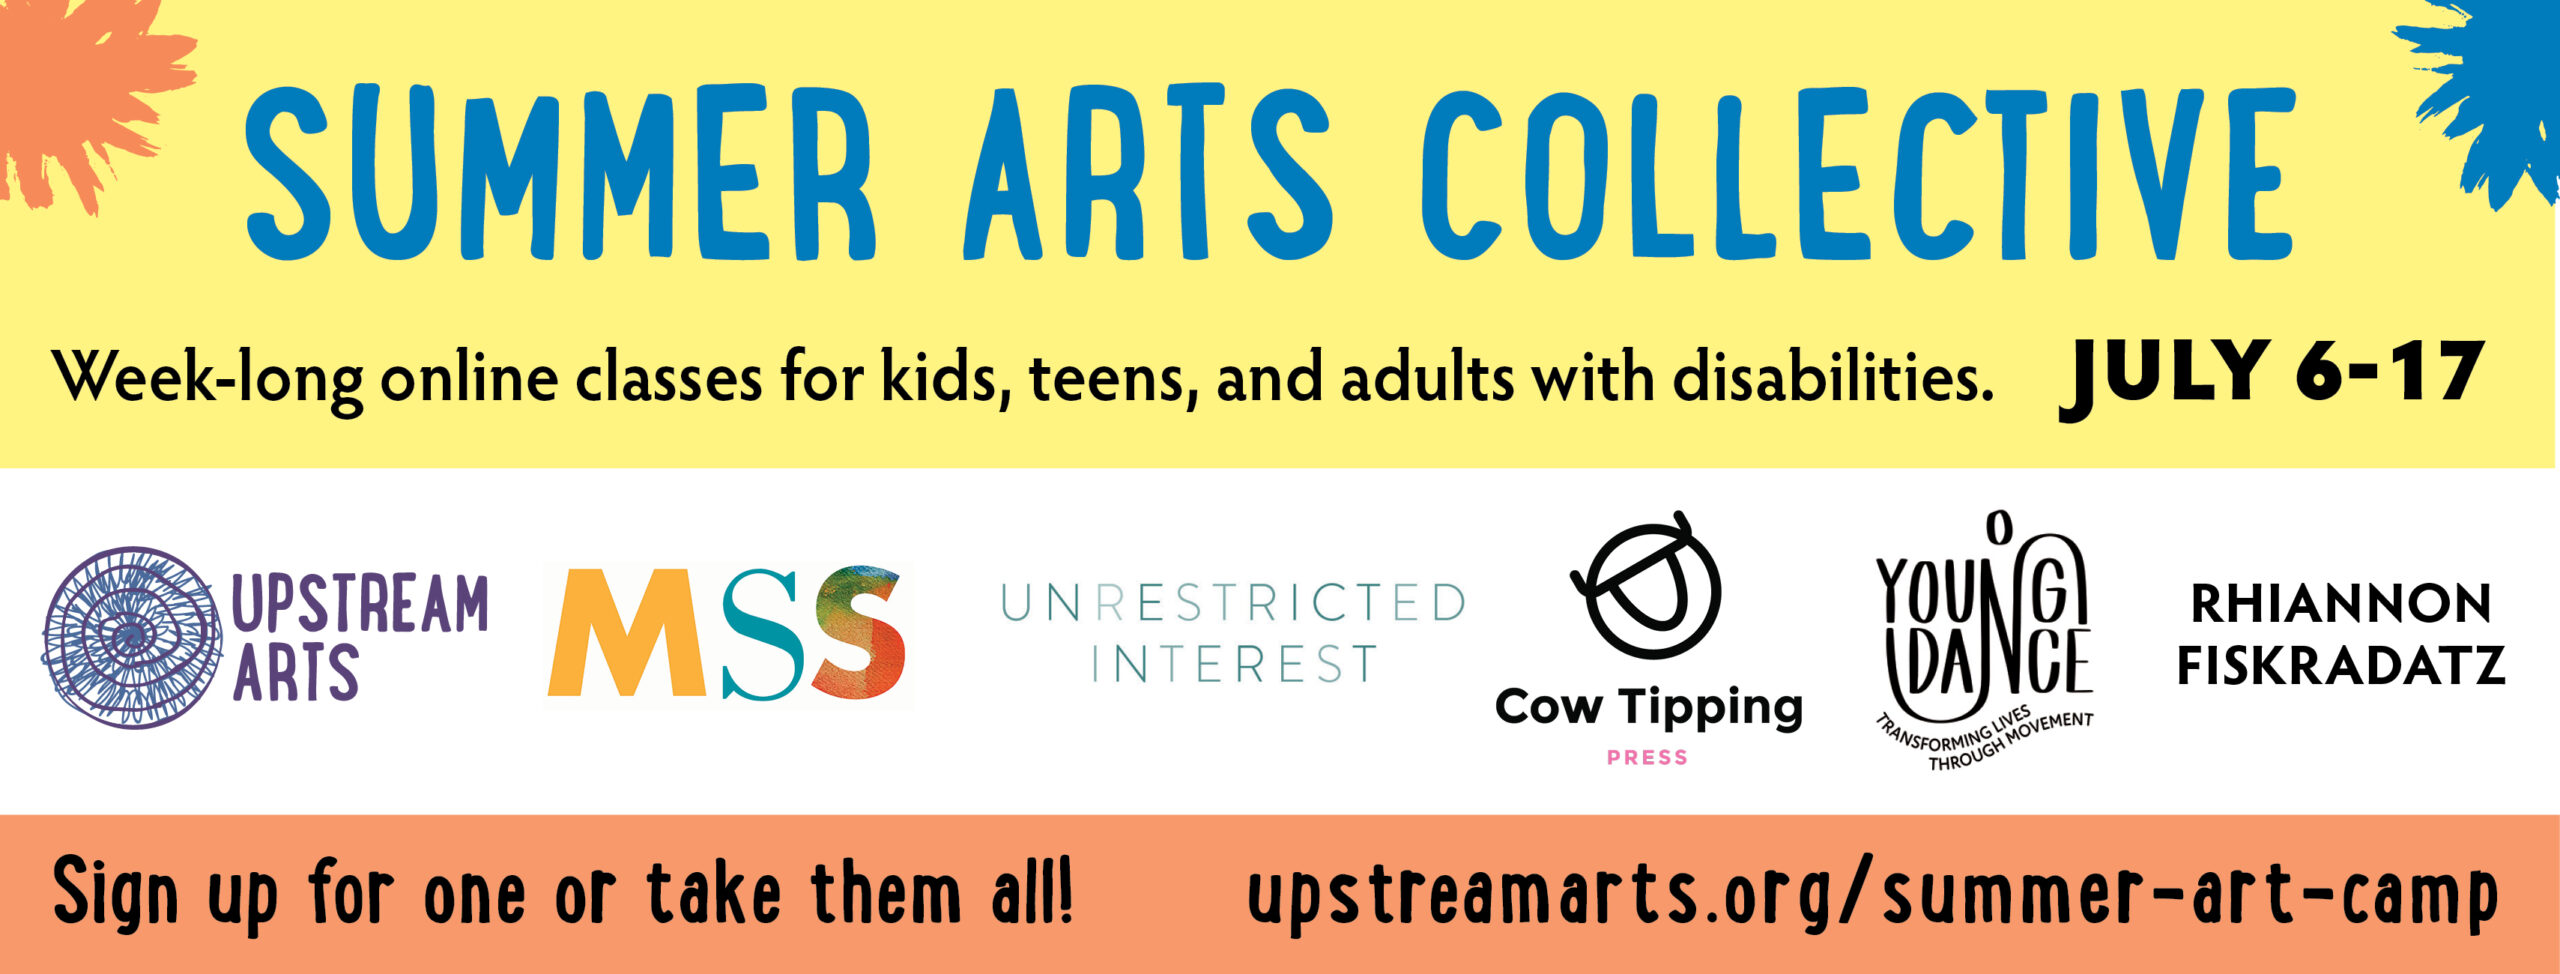 Support Upstream Arts May 1 through June 30 by visiting ZGfjN)kL$WuWrTKk!yjI4gZU to invest in creative connections and the arts for all ages, abilities, and disabilities.